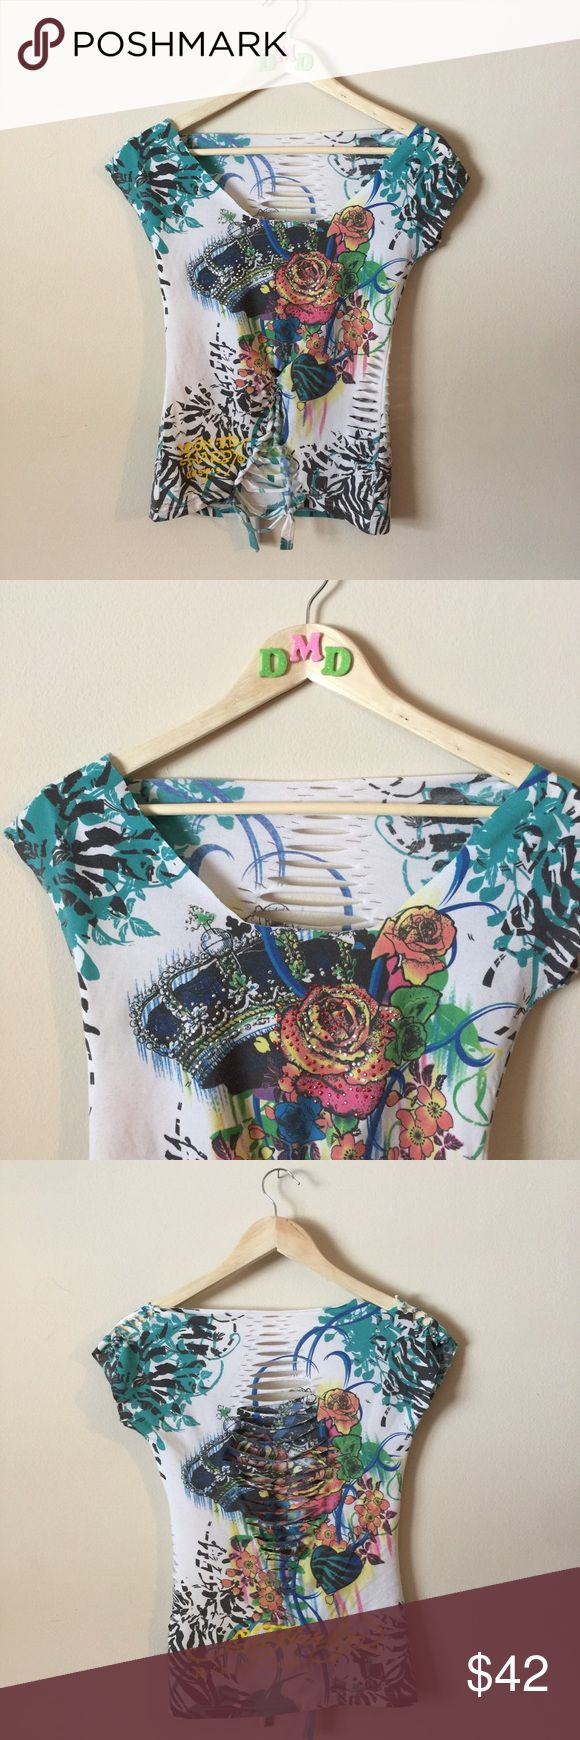 ✂️ CUSTOM • Ed Hardy shredded cut up shirt • CUSTOM SHREDDED CUT UP & WOVEN / BRAIDED ED HARDY SHIRT • Very colorful and bright flower designs with studs, rhinestones, bling embellishment • Has custom cuts throughout; somewhat low cut neckline  • SIZE: SMALL  #edhardy #chrstianaudigier #tattoo #buckle #bke #rhinestone #designer #sliced #shredded #revamped #restyled #lowcut #unique Ed Hardy Tops Tees - Short Sleeve